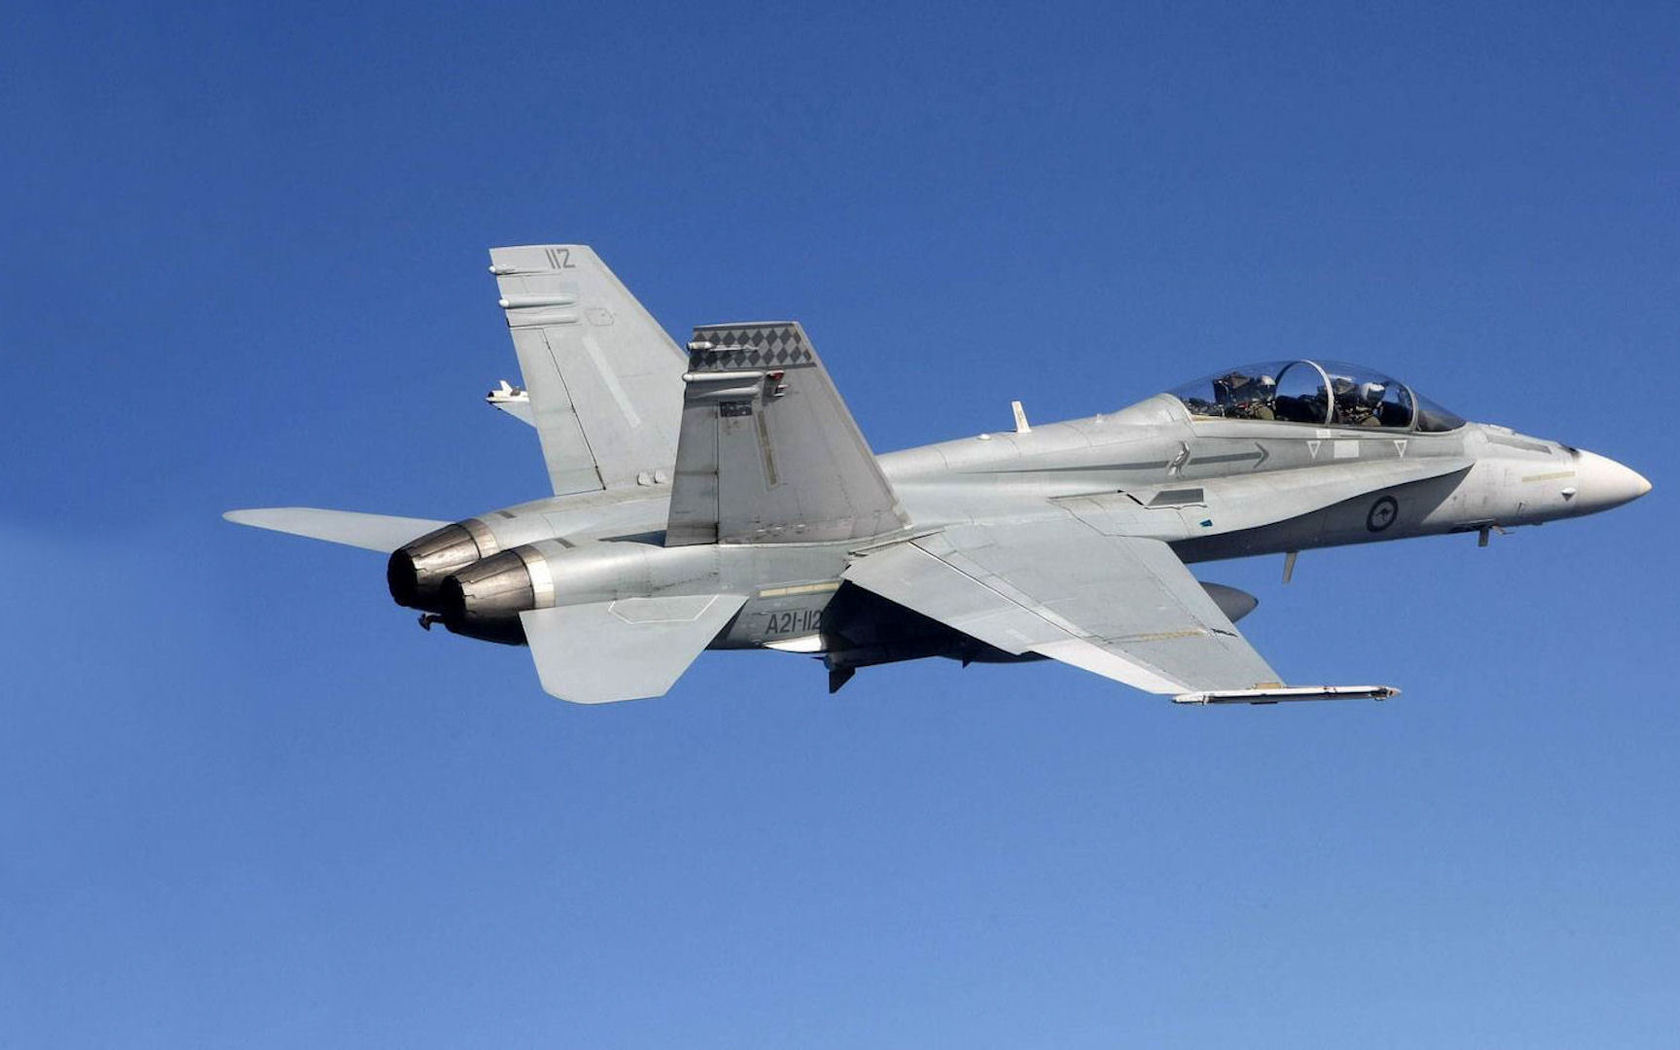 fa 18 super hornet fighter bomber wallpapers - 1680x1050 - 114902